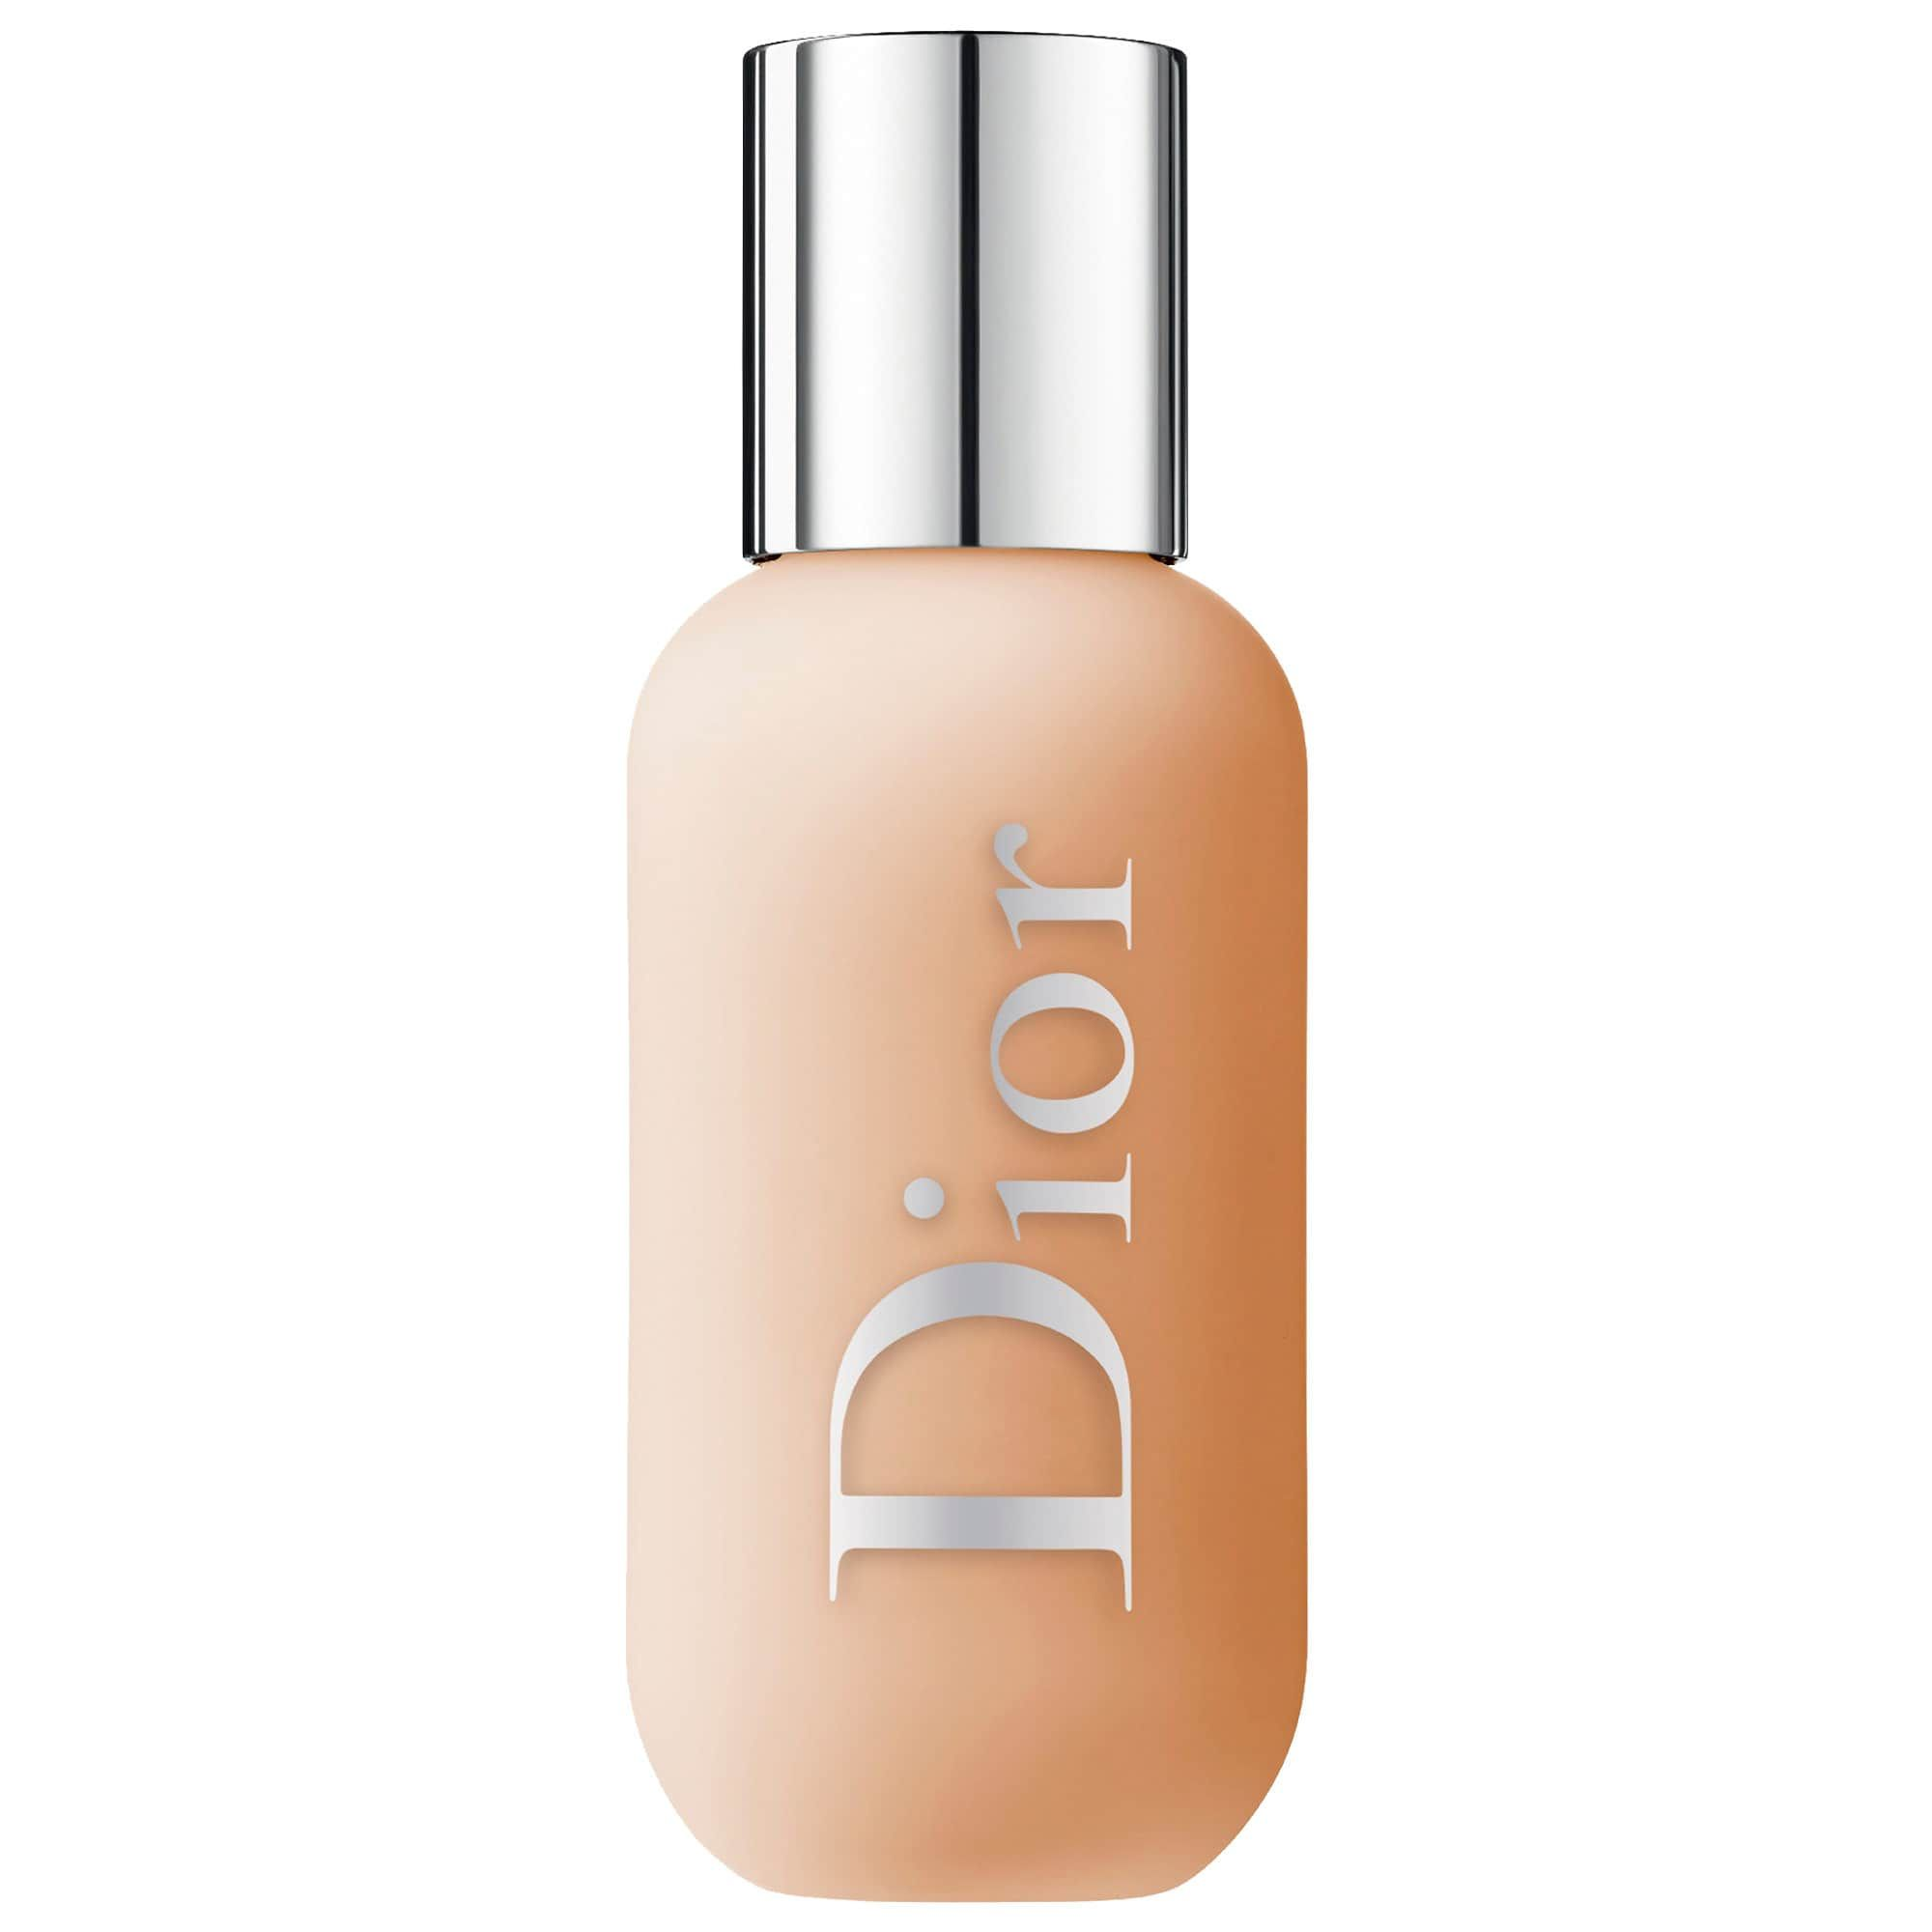 For Everyday Use Backstage Face & Body Foundation Dior $40.00 SHOP NOW This has become my all-time favorite foundation for day-to-day wear because it's buildable. It's not so matte that none of your natural dewiness will come through, but it definitely keeps the grease-prone T-zone in check.